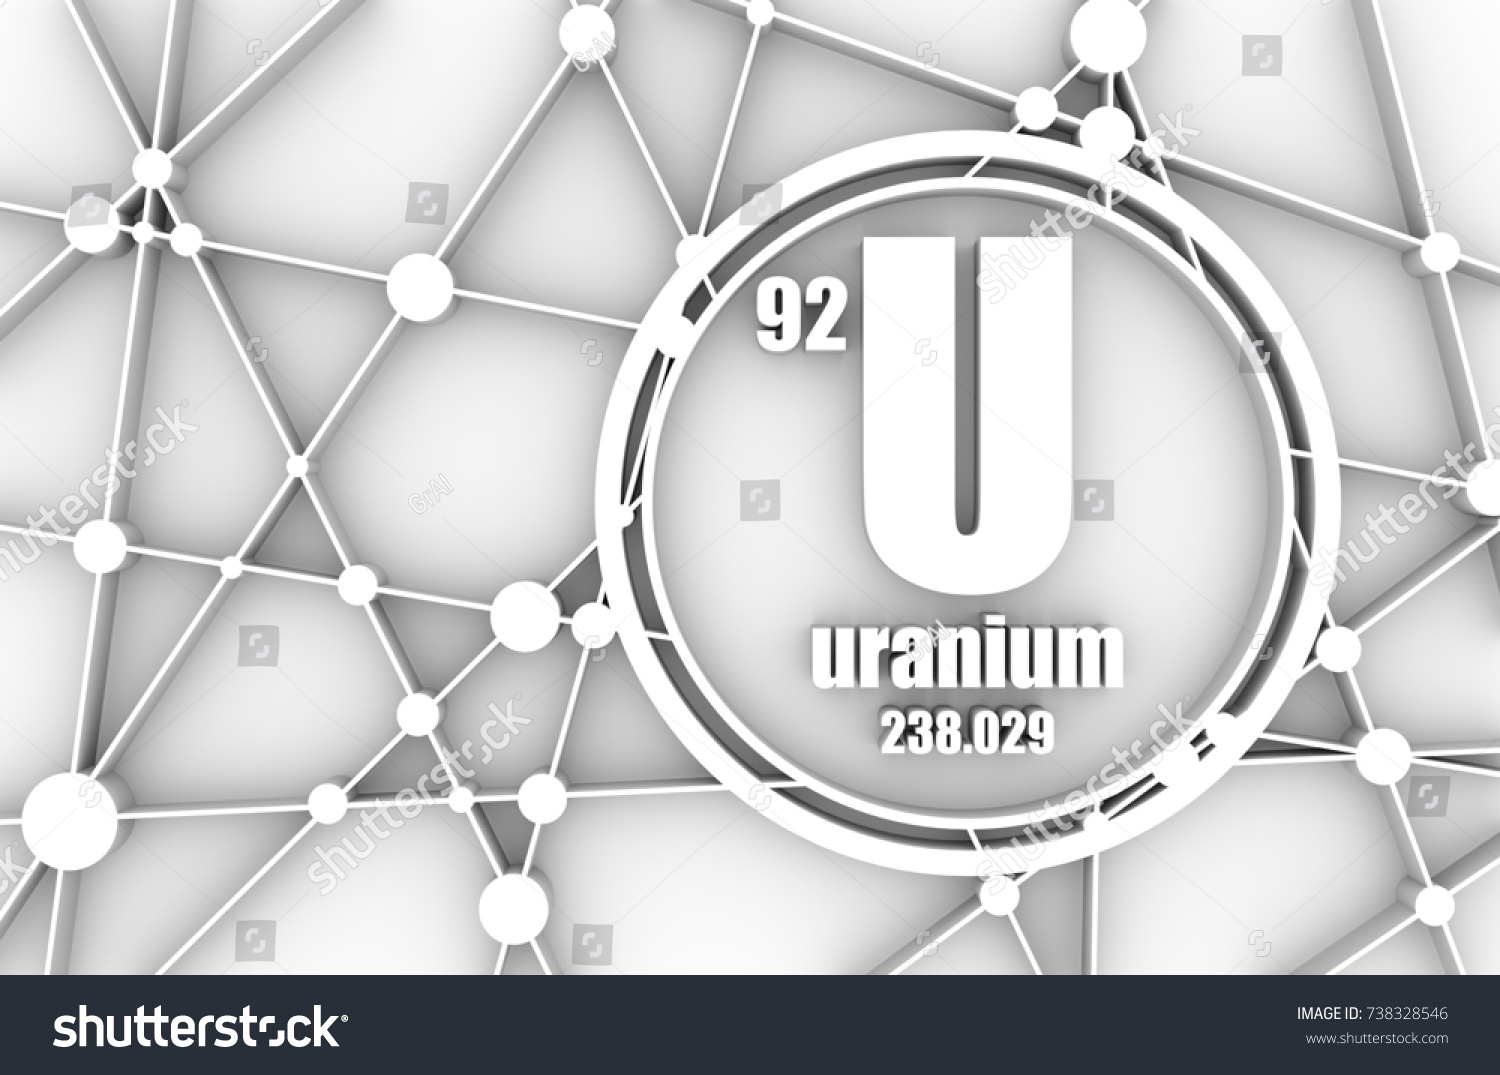 Uranium chemical element sign atomic number stock illustration uranium chemical element sign with atomic number and atomic weight chemical element of periodic urtaz